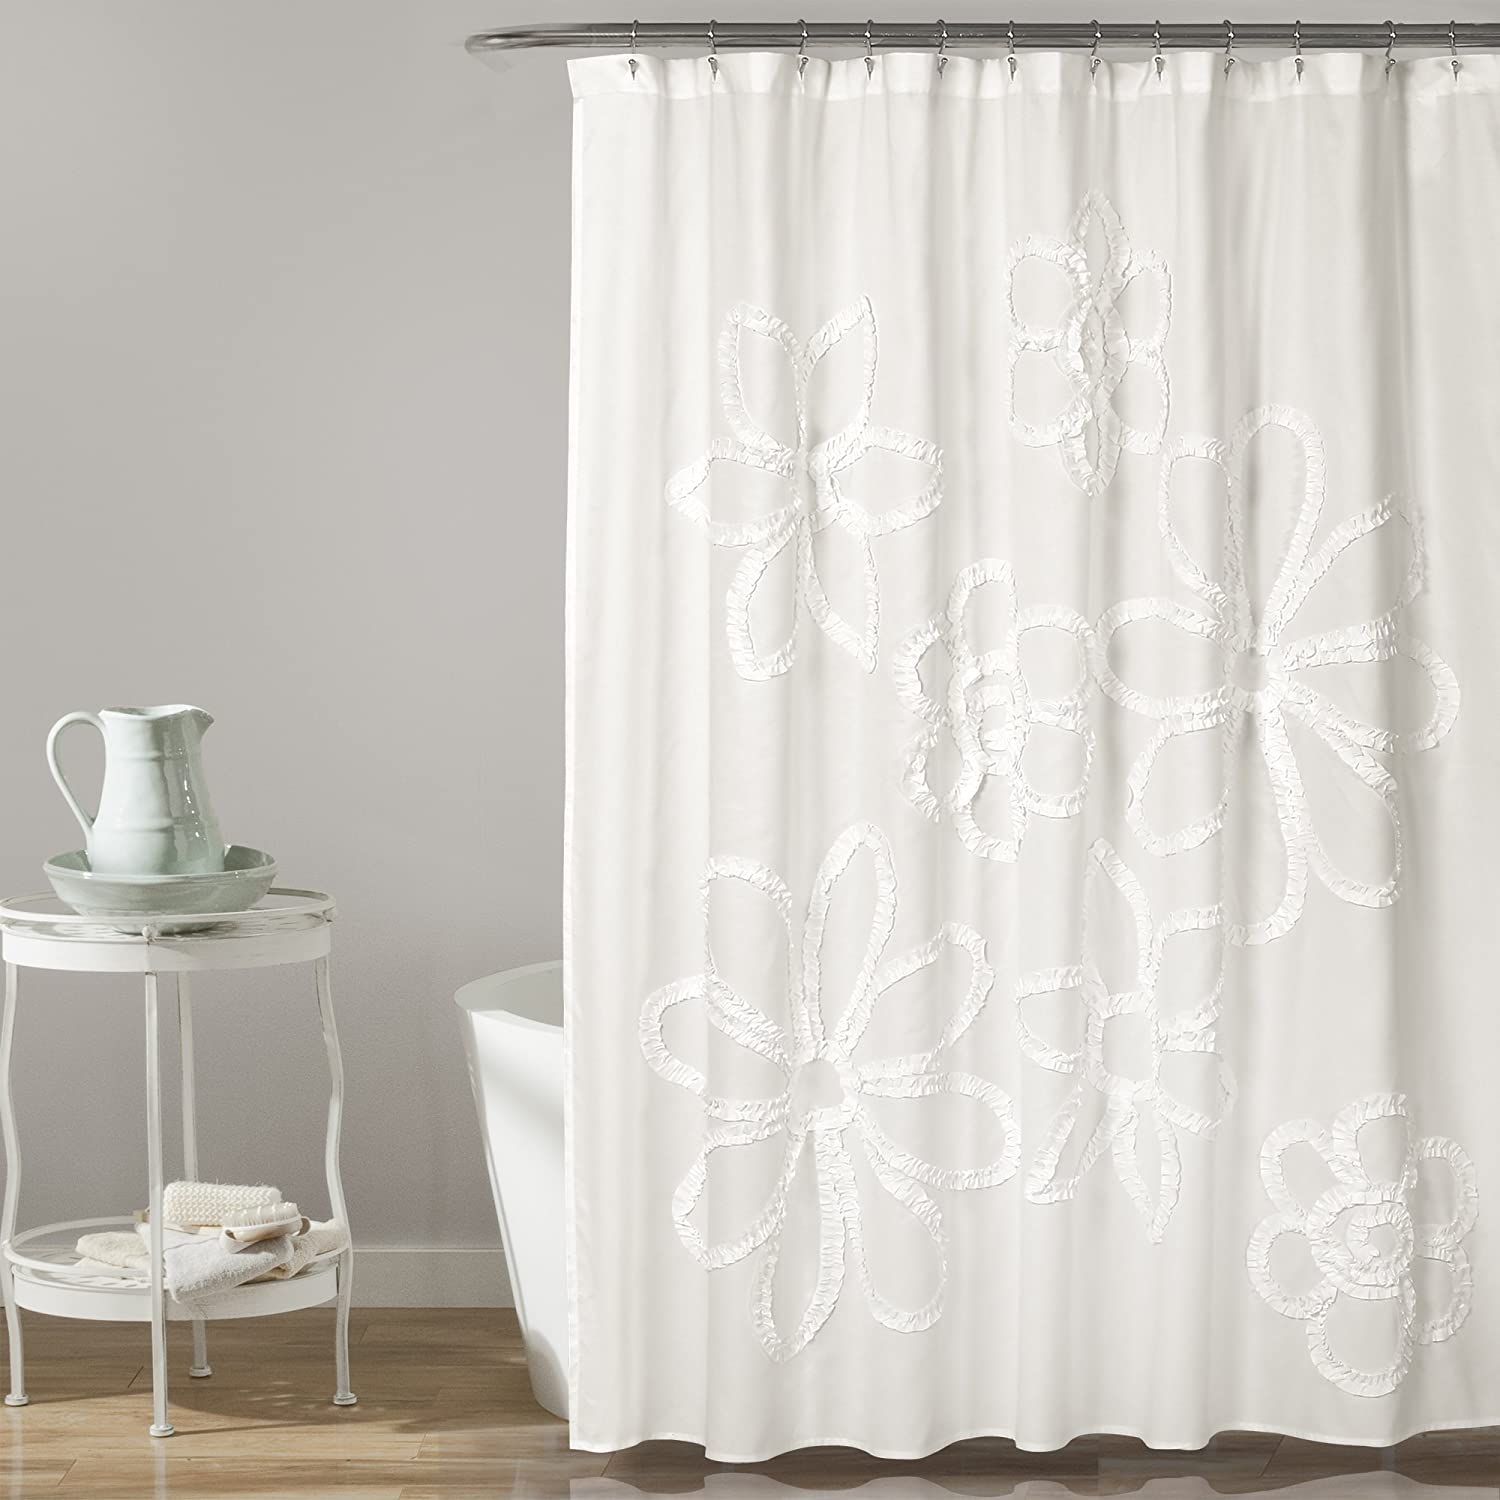 "Lush Decor, White Ruffle Flower Shower Curtain | Floral Textured Shabby Chic Farmhouse Style Design, x 72, 72"" x 72"""